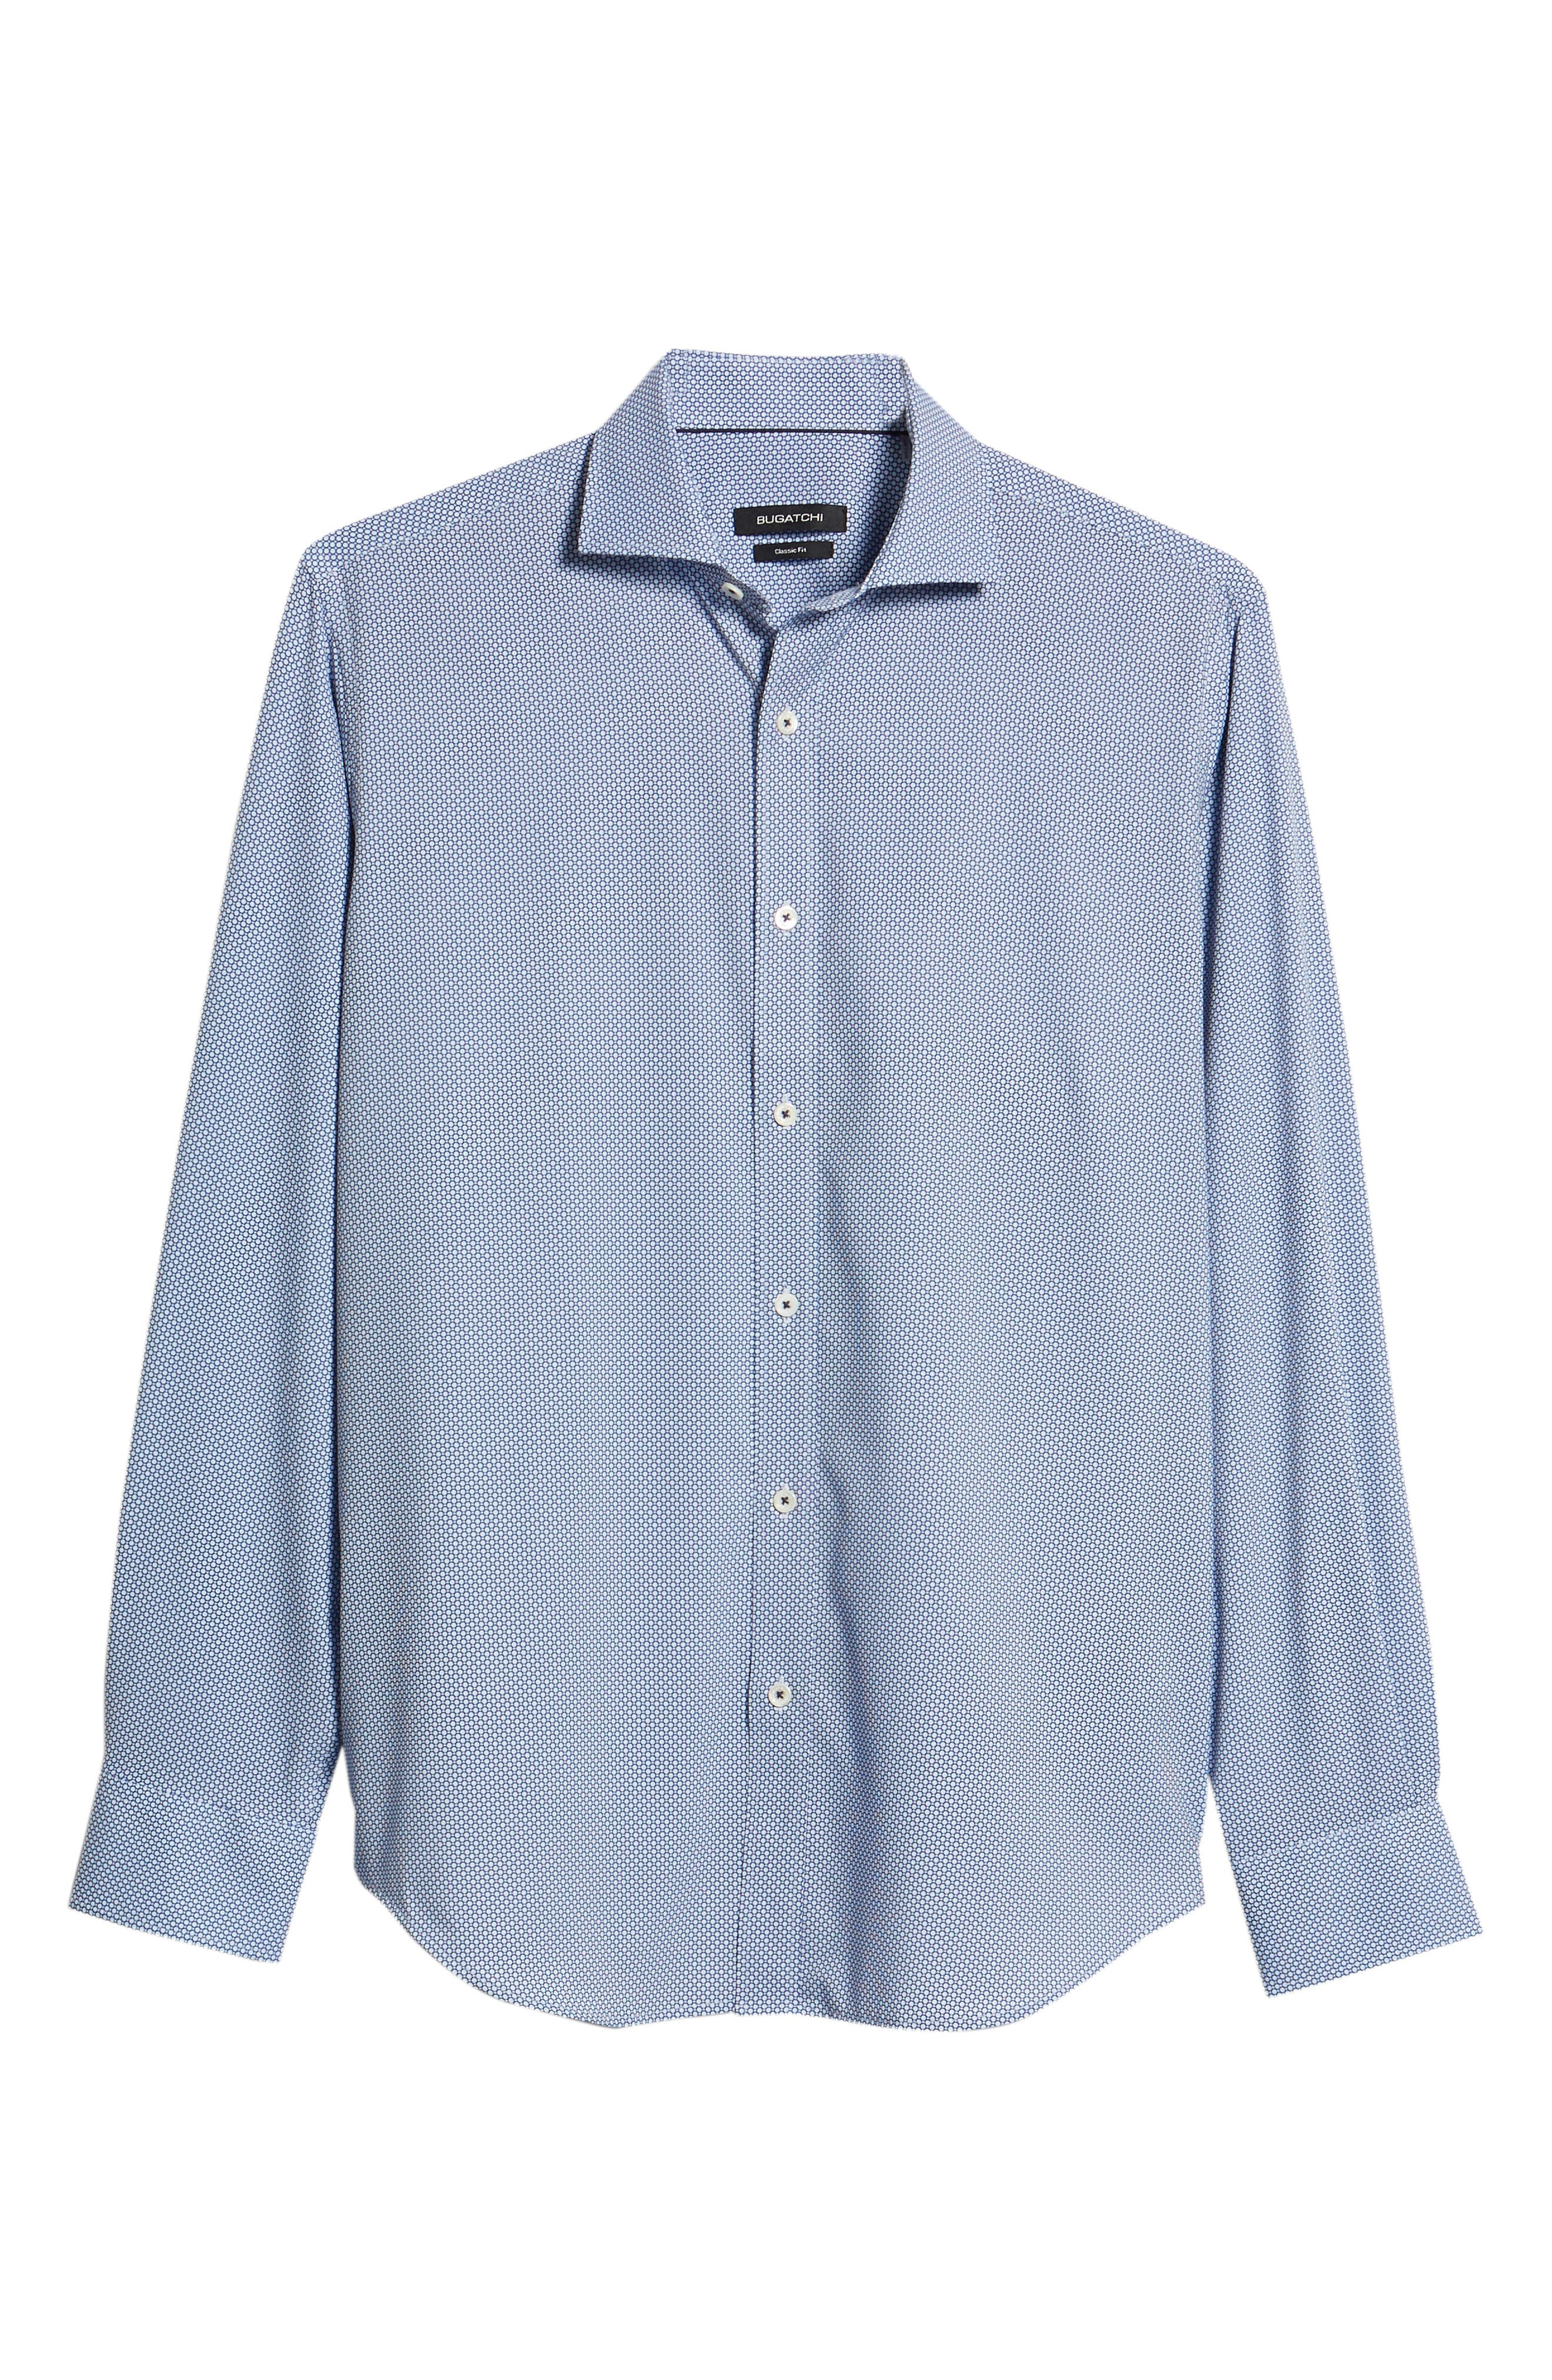 Classic Fit Stacked Circles Performance Sport Shirt,                             Alternate thumbnail 6, color,                             NAVY